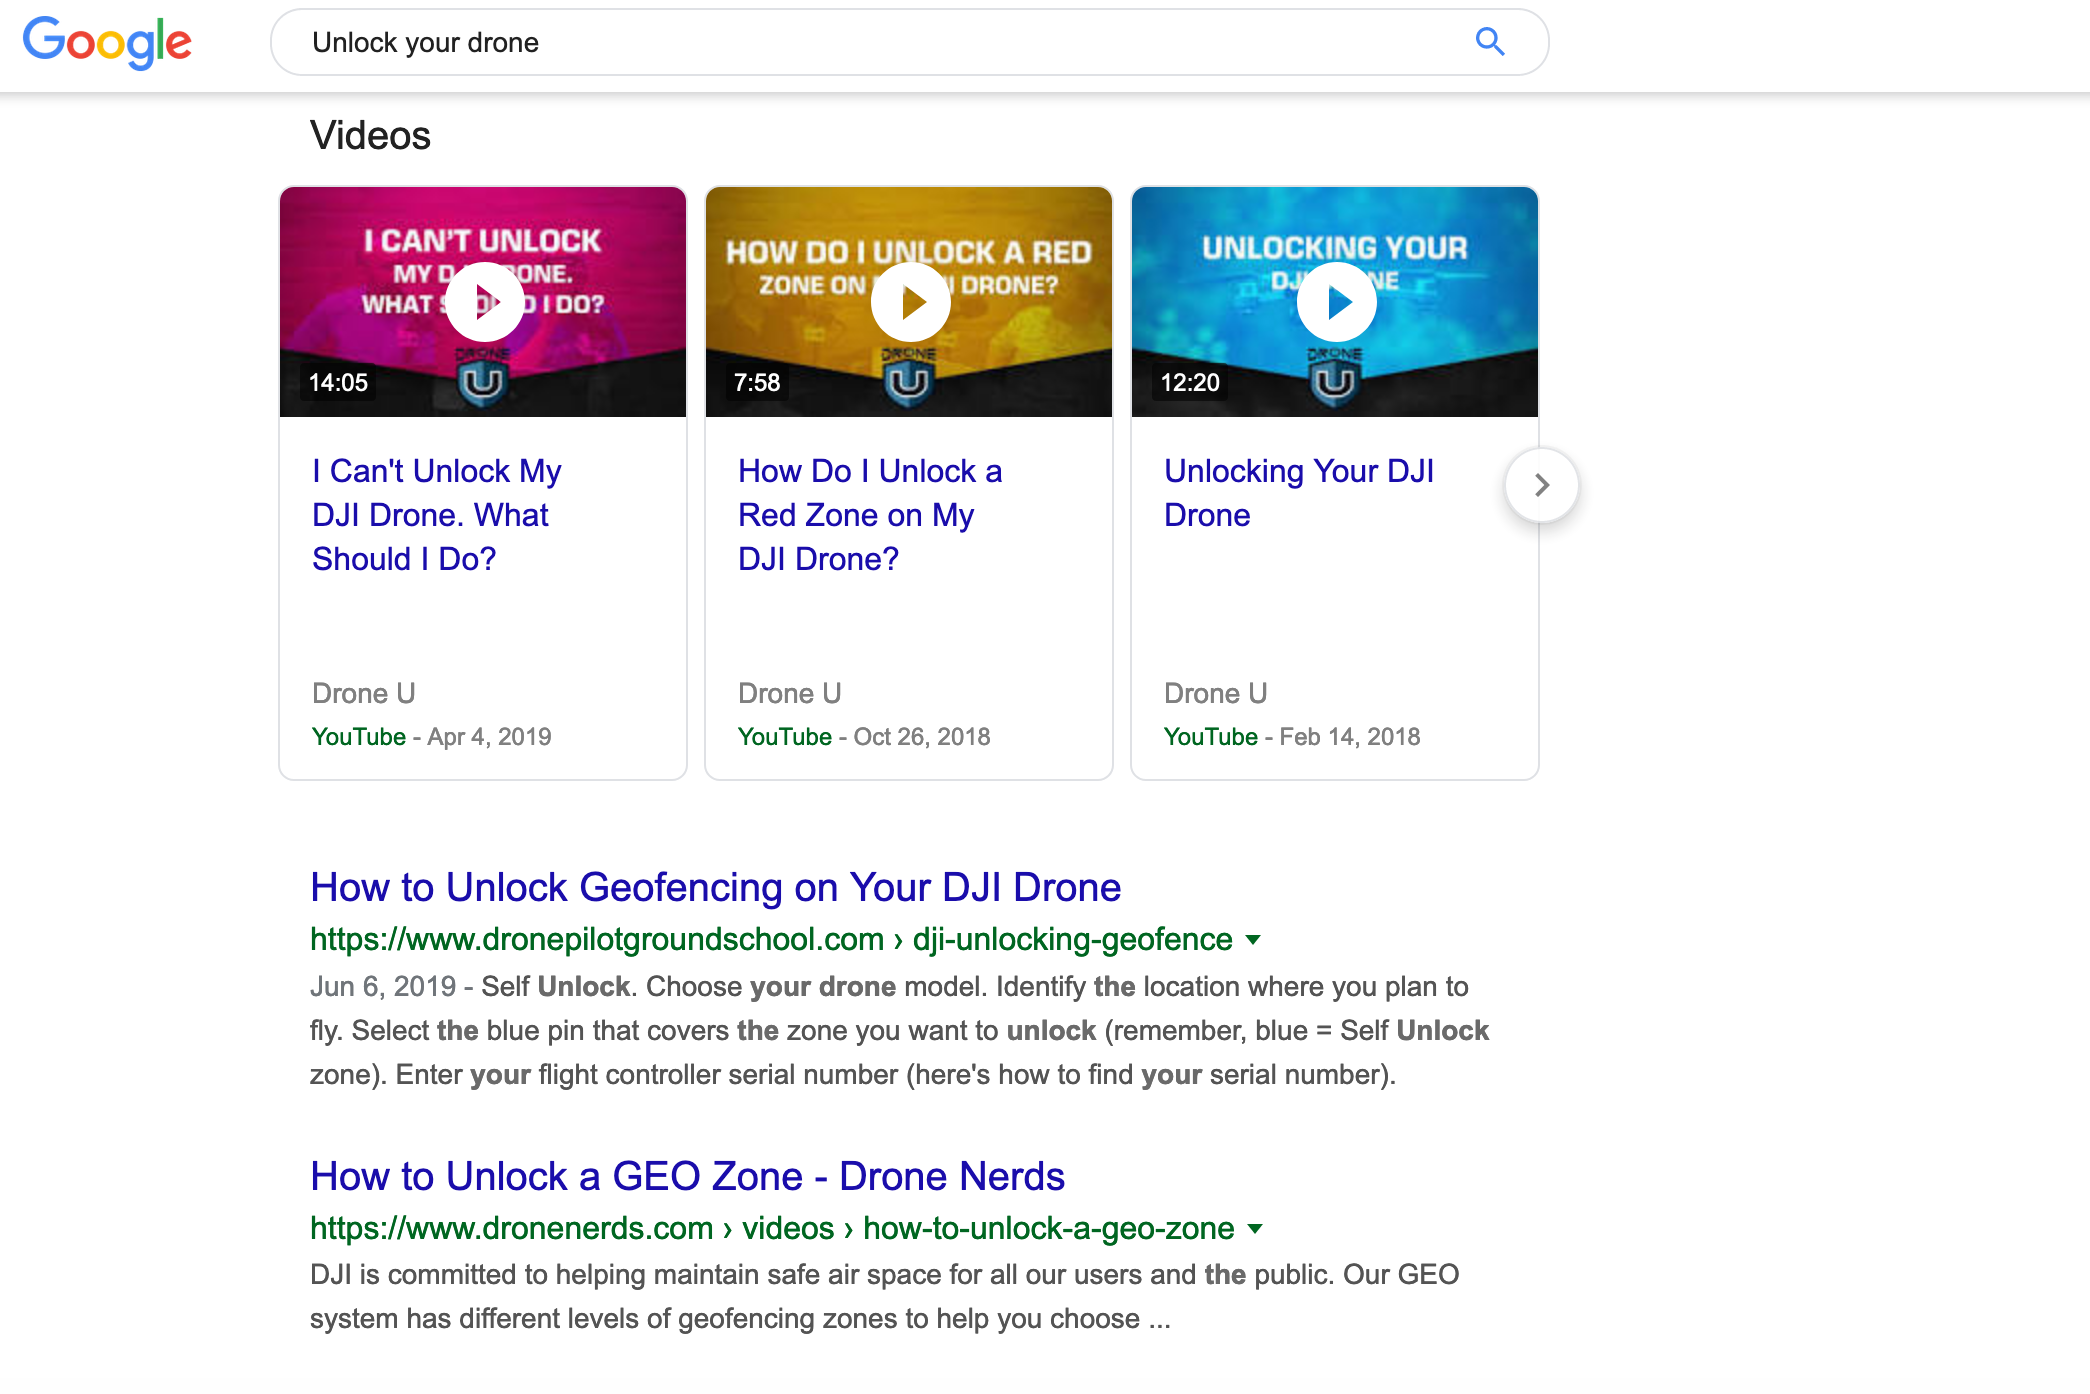 Unlock your drone search results